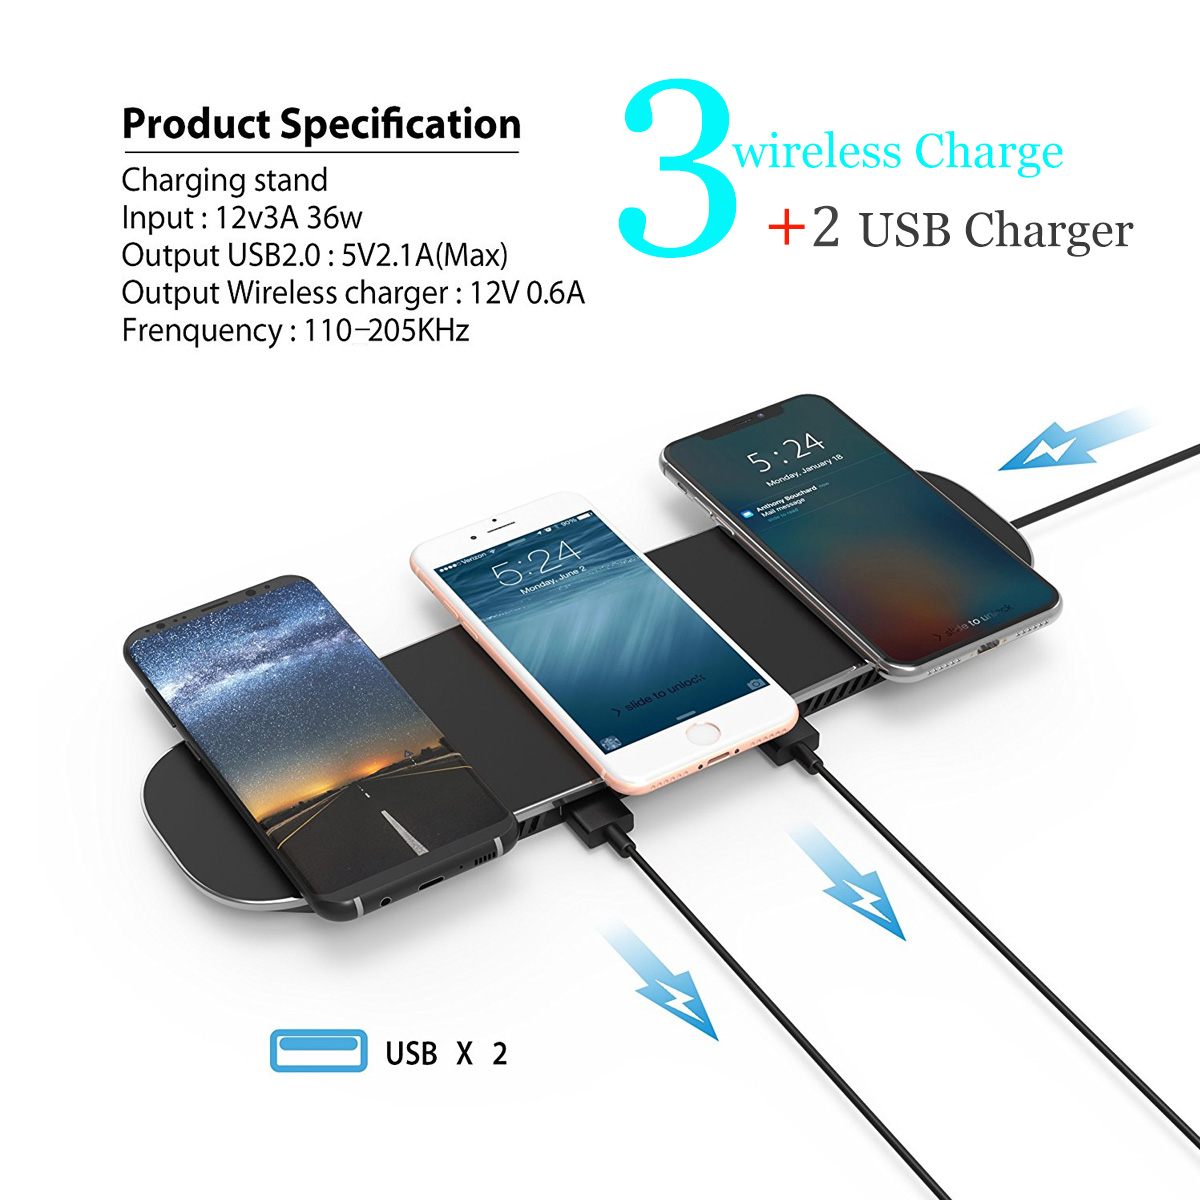 Qi Triple Wireless Charger Station,3 Devices Multi Wireless Charger Pad,Desktop Charging Station qi charger for iPhon e X, iPhon e 8/8Plus, Galaxy S8+ S7/S7 Edge Note 8/5, Nexus 5/6/7